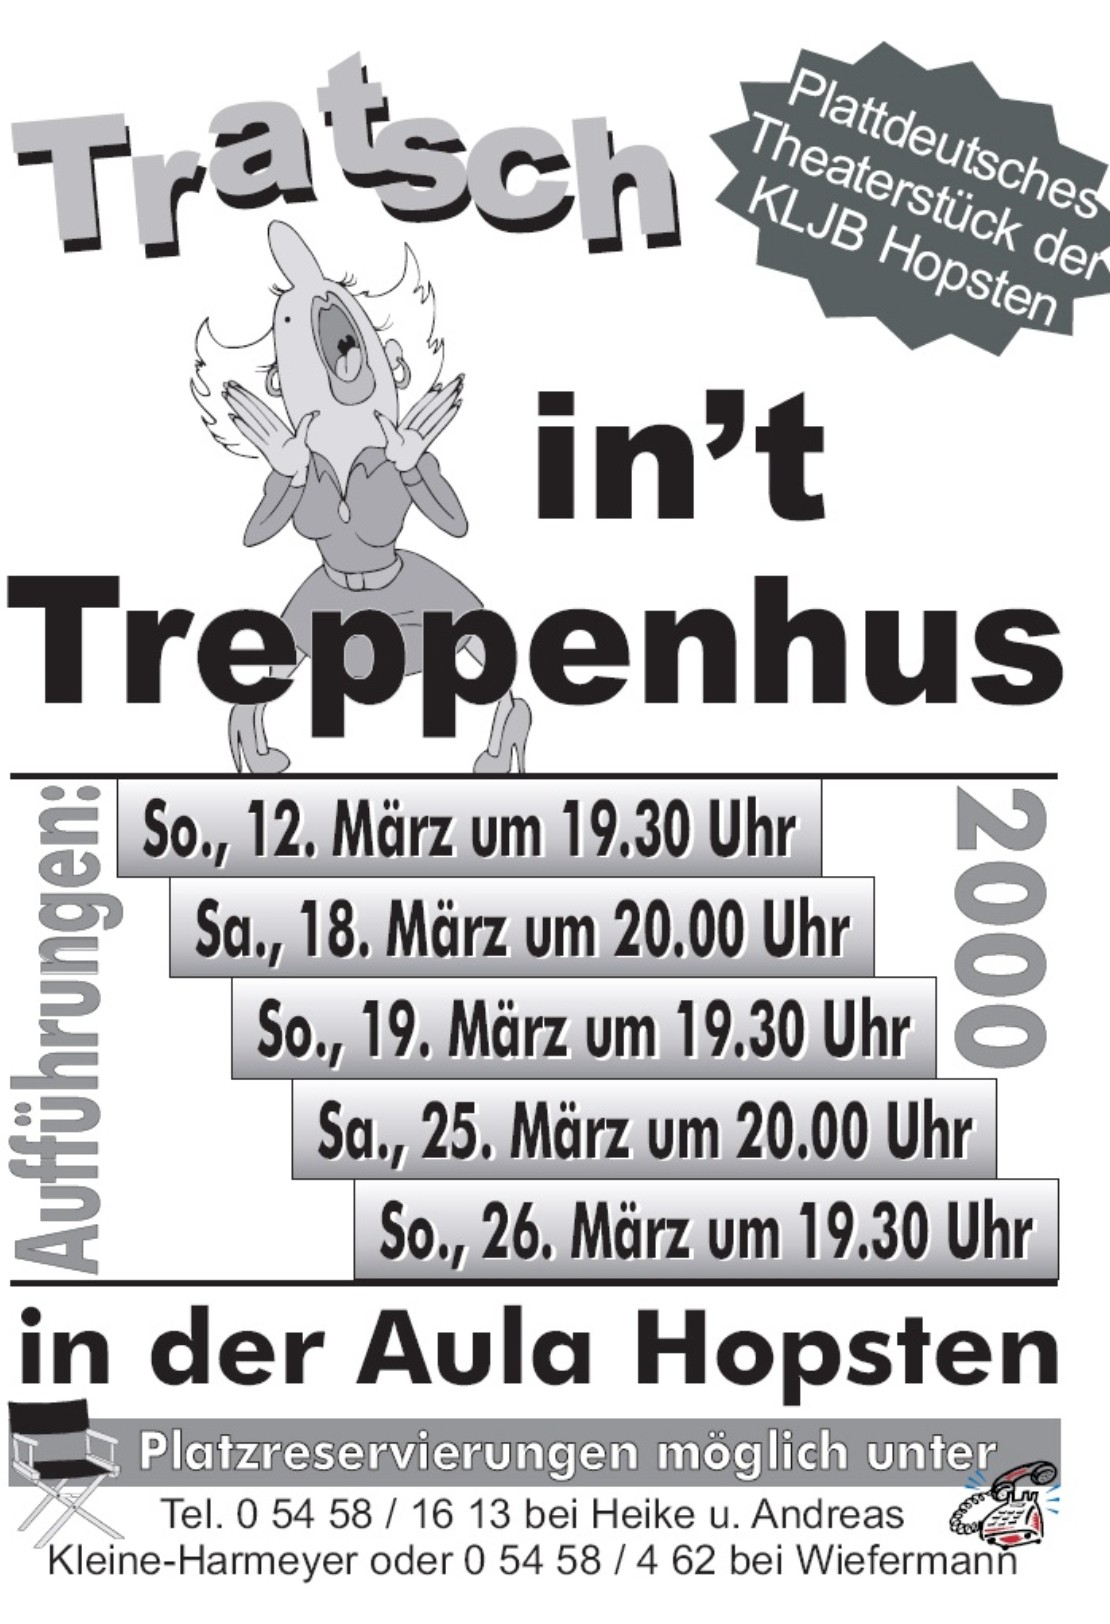 Theaterplakat 2000